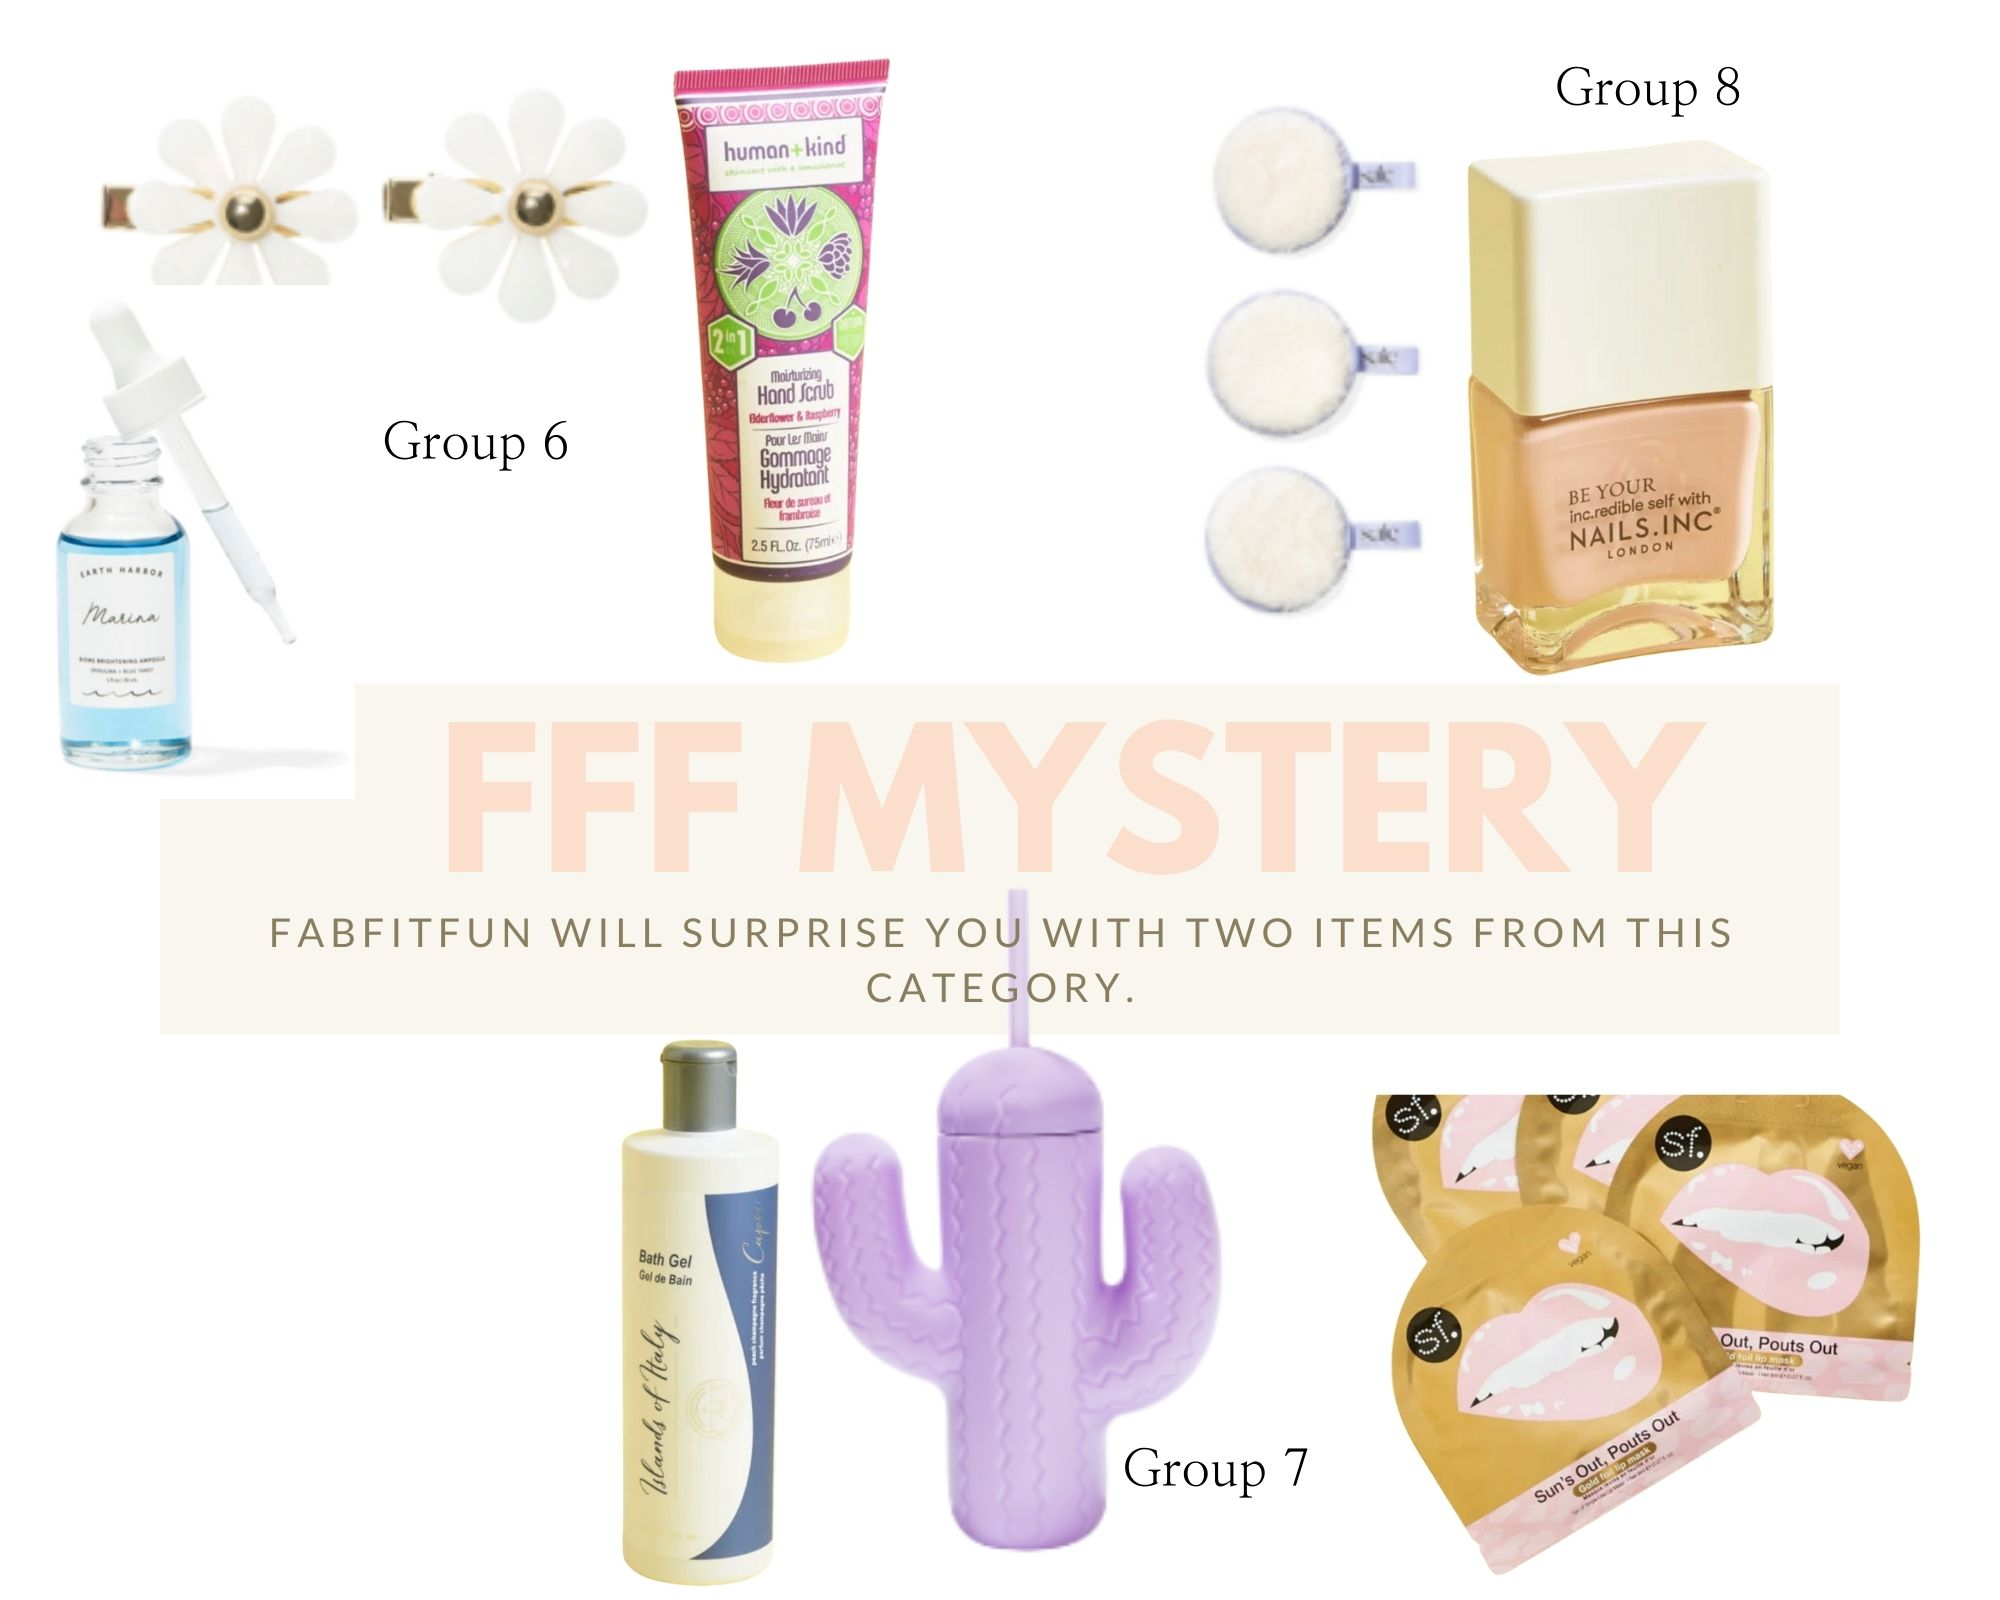 Spring FabFitFun Box by popular Monterey life and style blog, Haute Beauty Guide: image of jewel flower hair clips, human + kind hand scrub, Earth Harbor marina brightening ampoule, skin forum sun's out Pouts Out lip mask, pink sky cactus cup with straw, and Cali Cosmetics body wash.